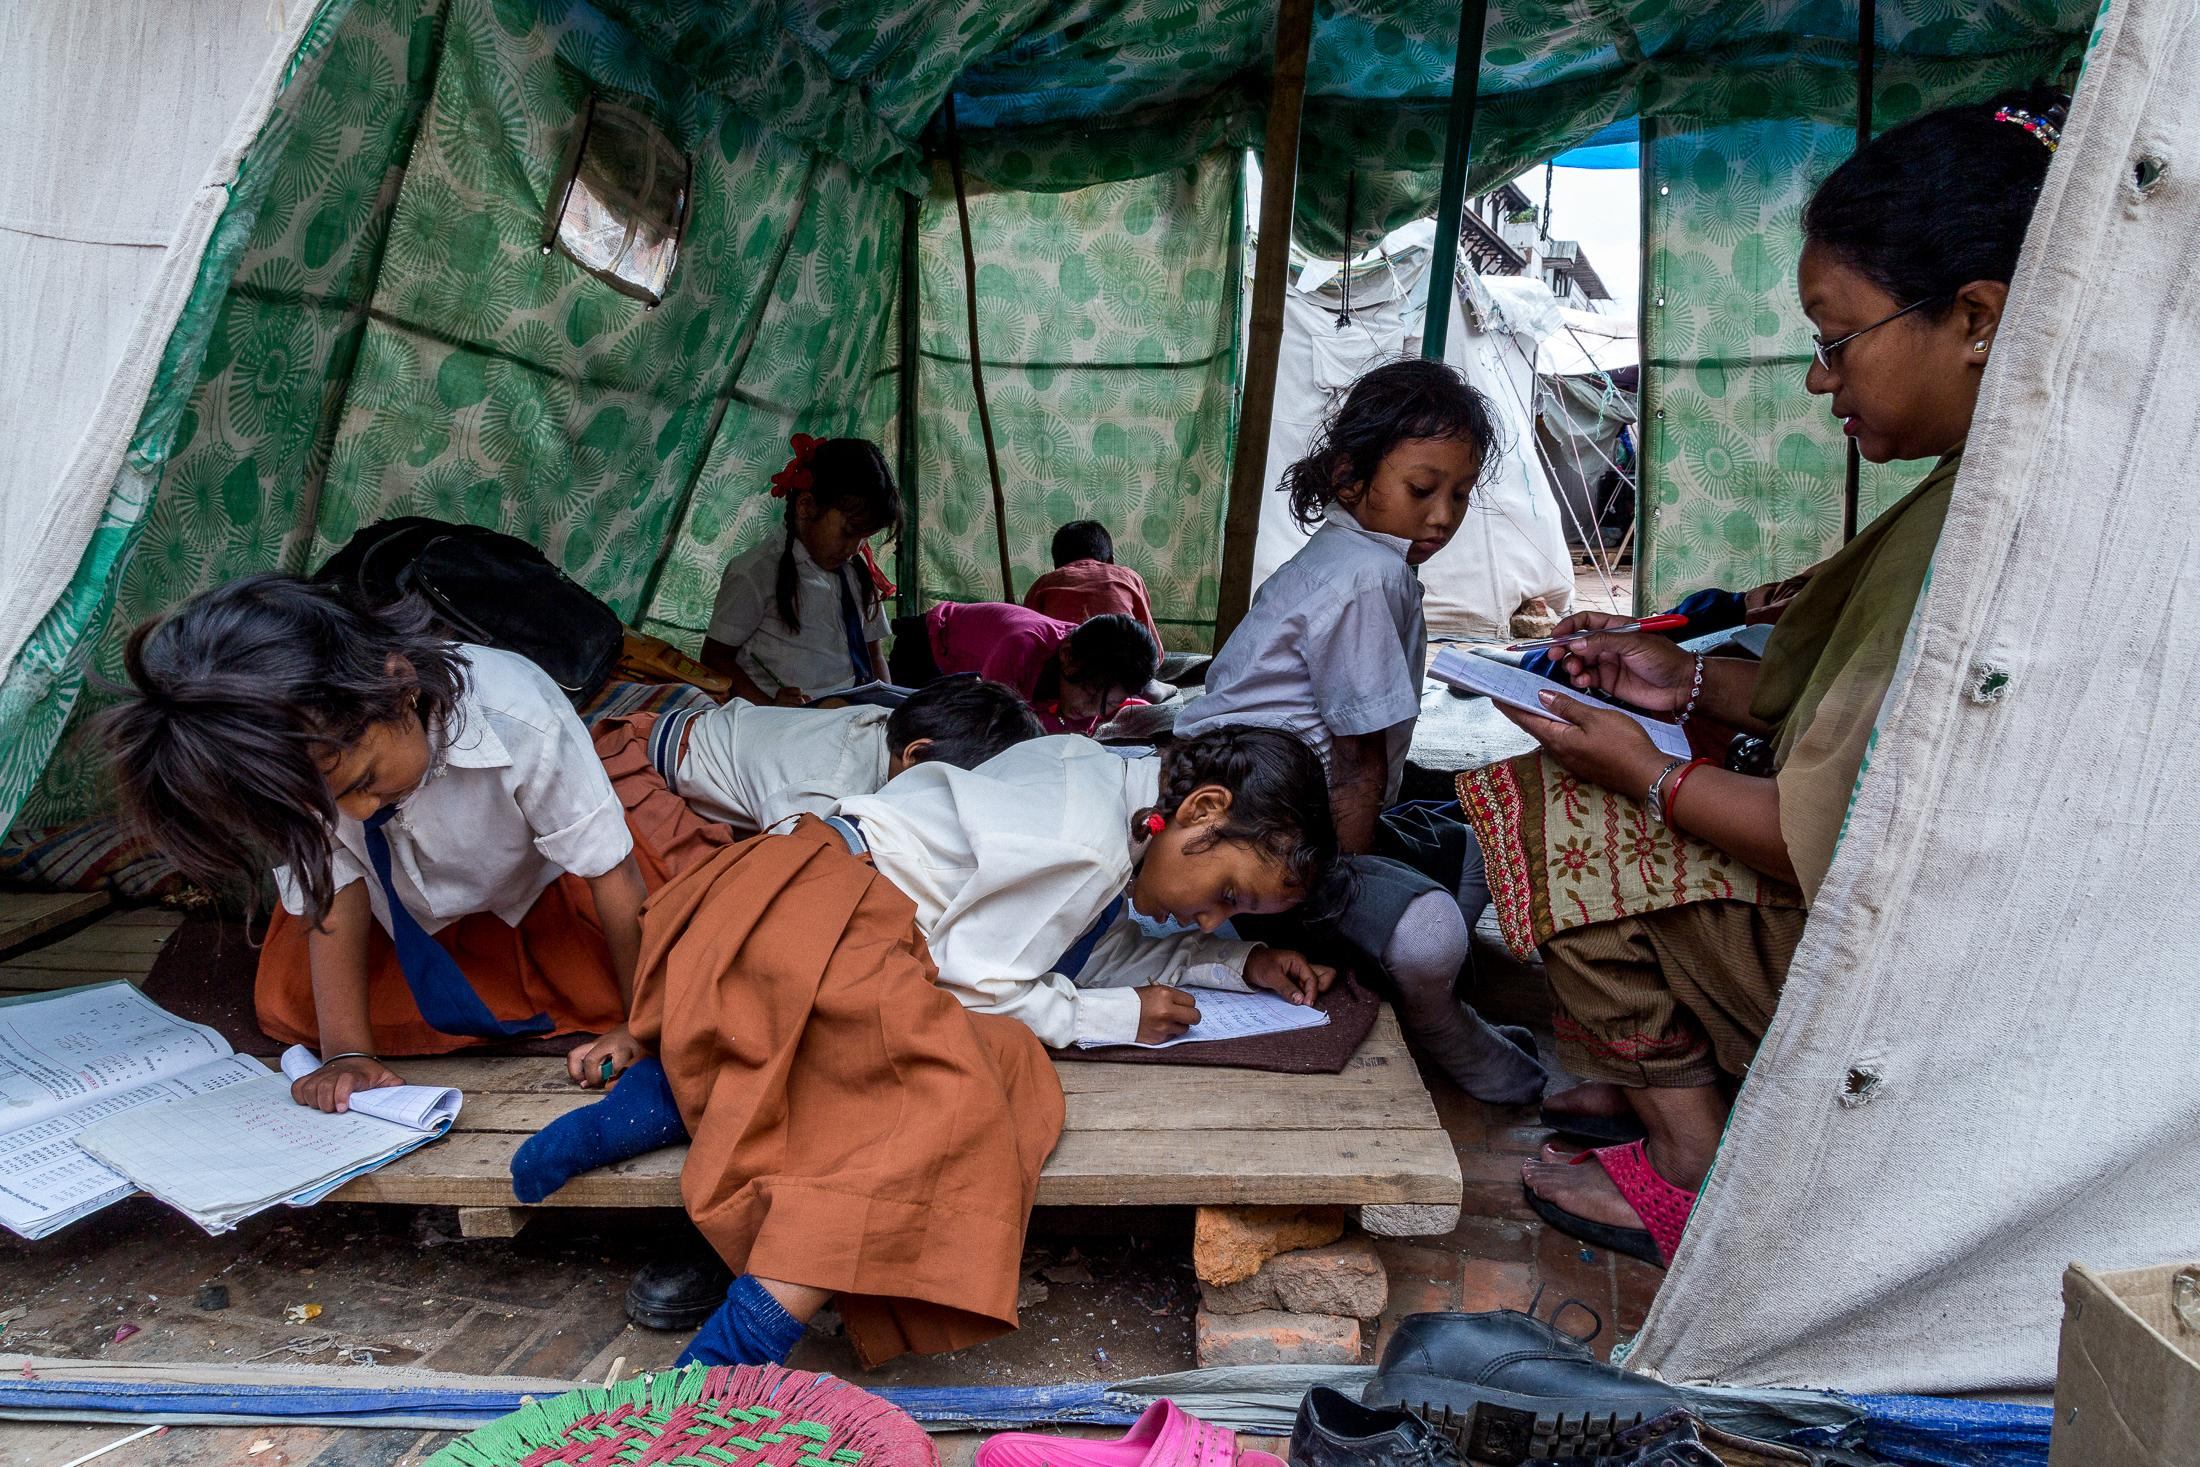 KATHMANDU, NEPAL - JUNE 21, 2015: Young children attend a class inside a tent set up in one of the temporary camps for people who lost their homes in the earthquake that hit Nepal in Kathmandu, Nepal on June 21, 2015. Photo: © Omar Havana